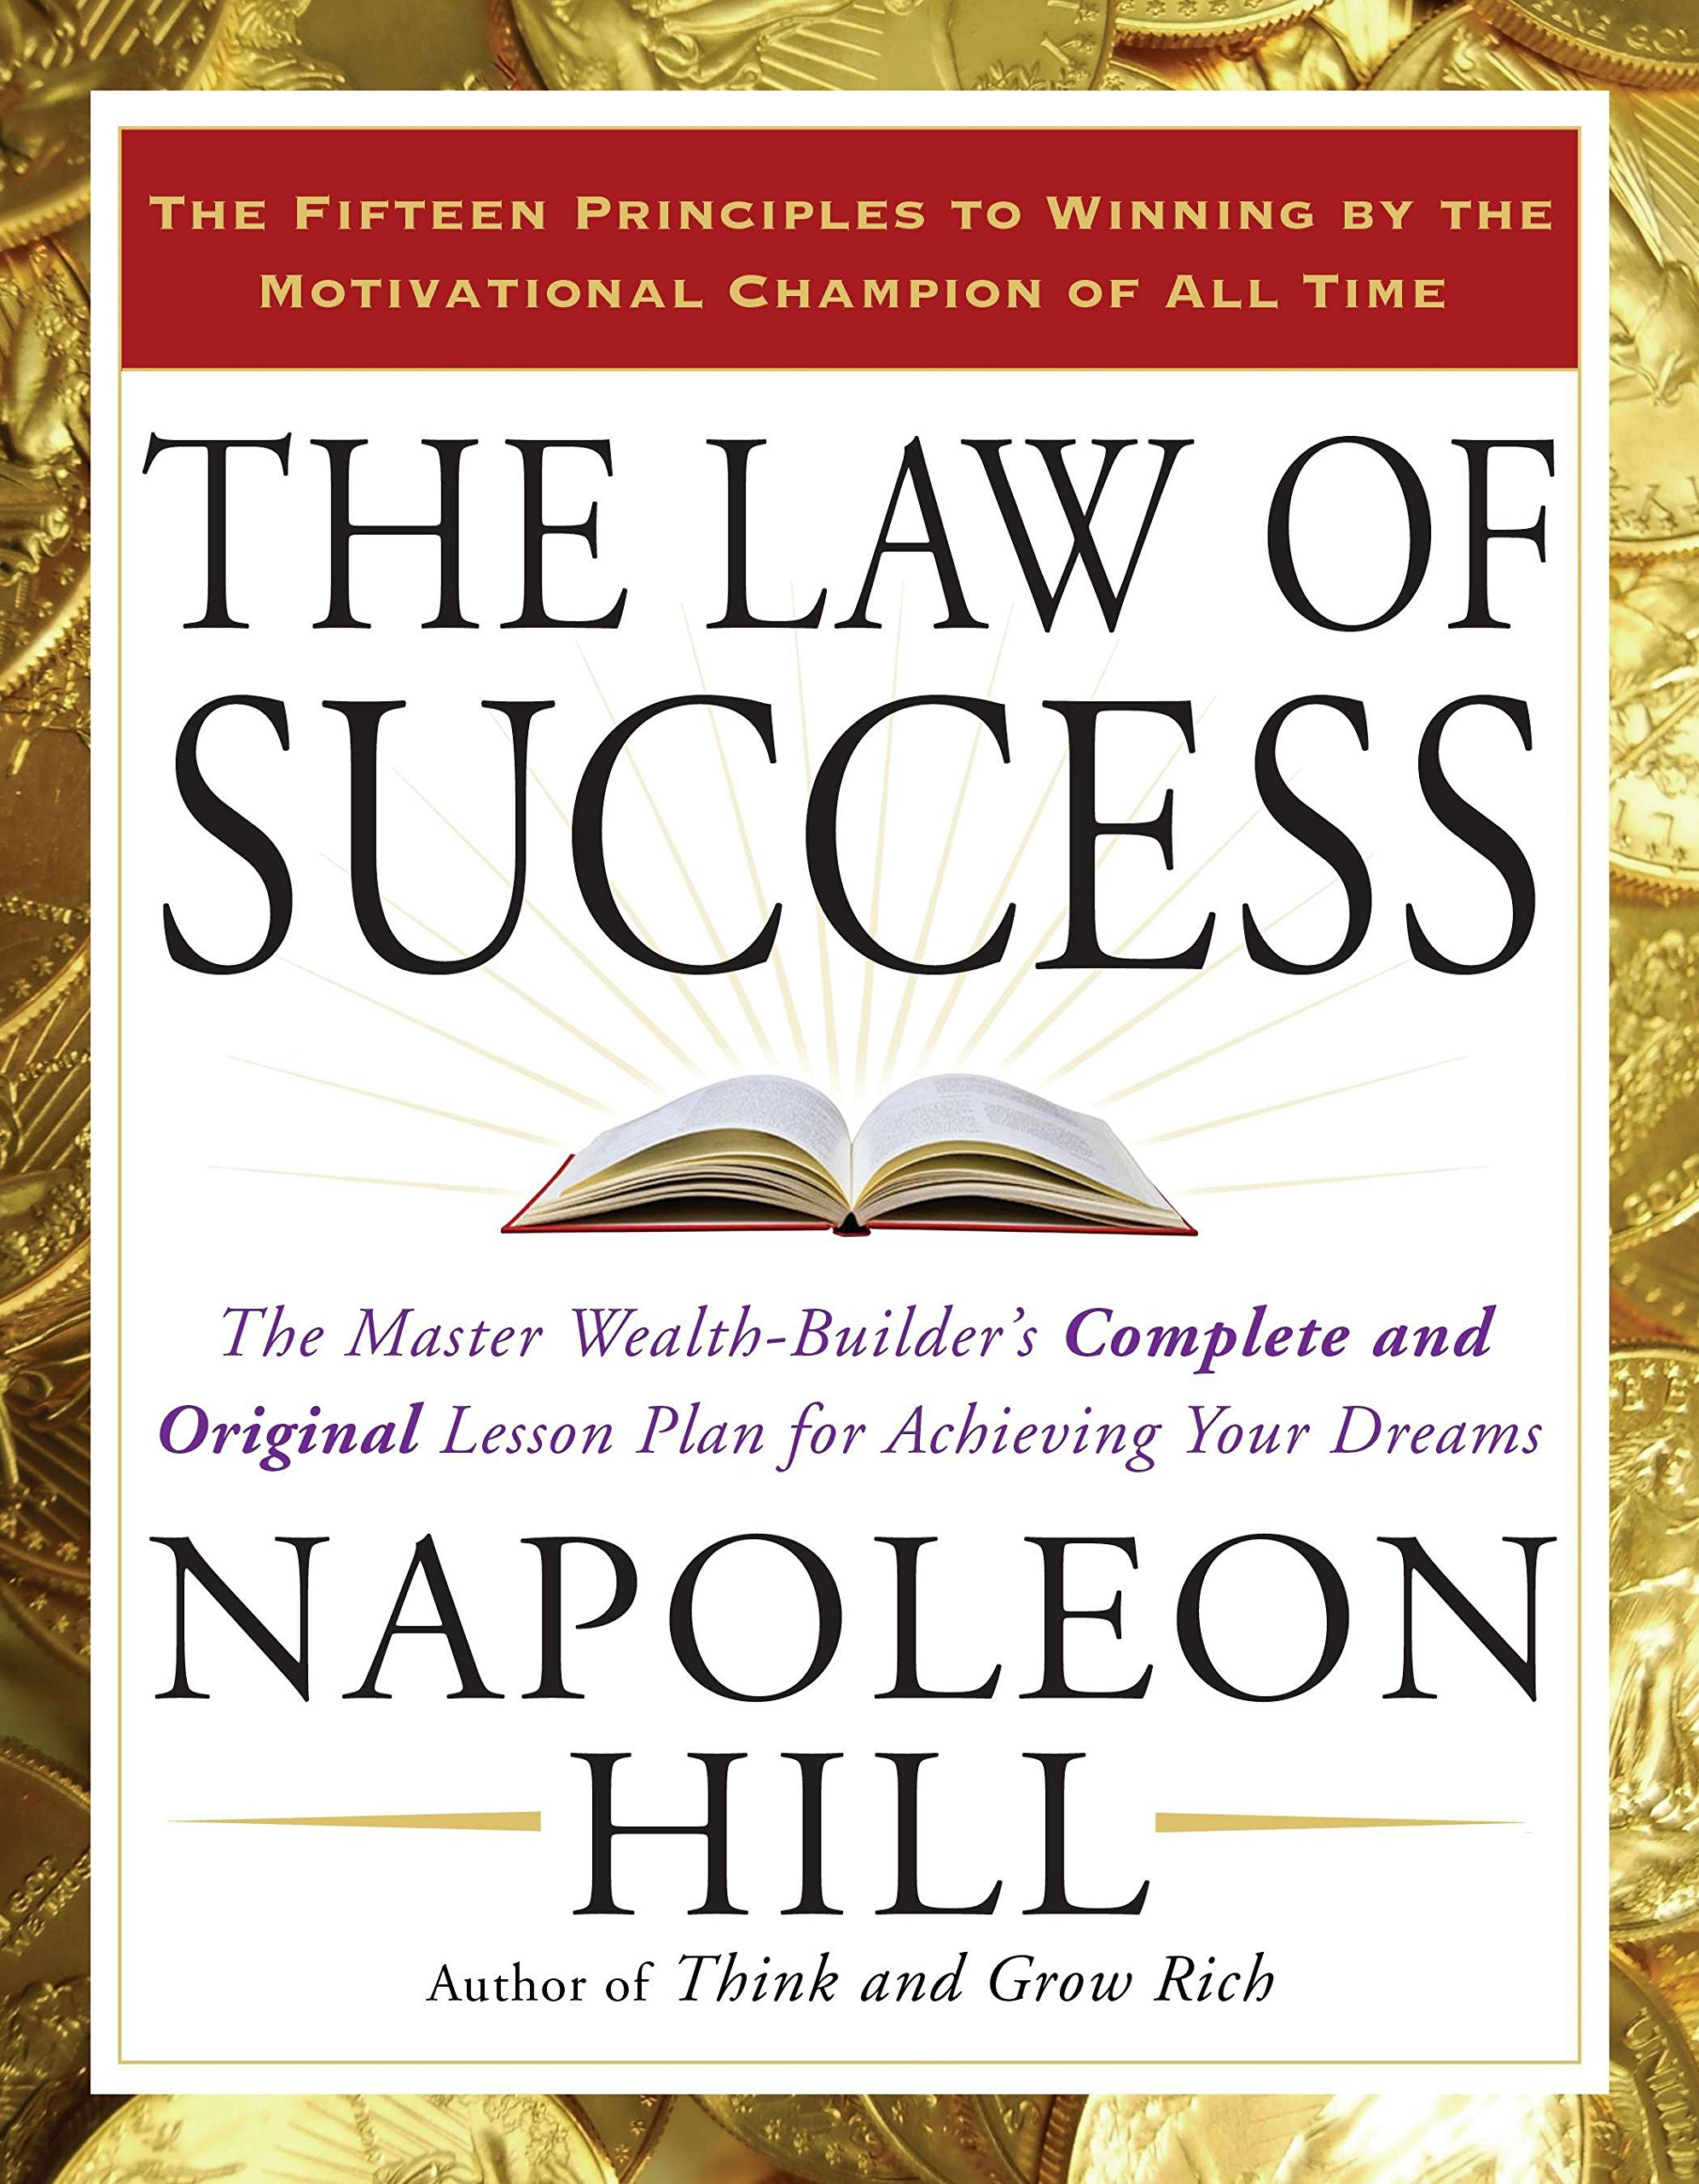 The Law of Success: The Master Wealth-Builder's Complete and Original Lesson  Plan for Achieving Your Dreams: Napoleon Hill: 9781585426898: Amazon.com:  Books